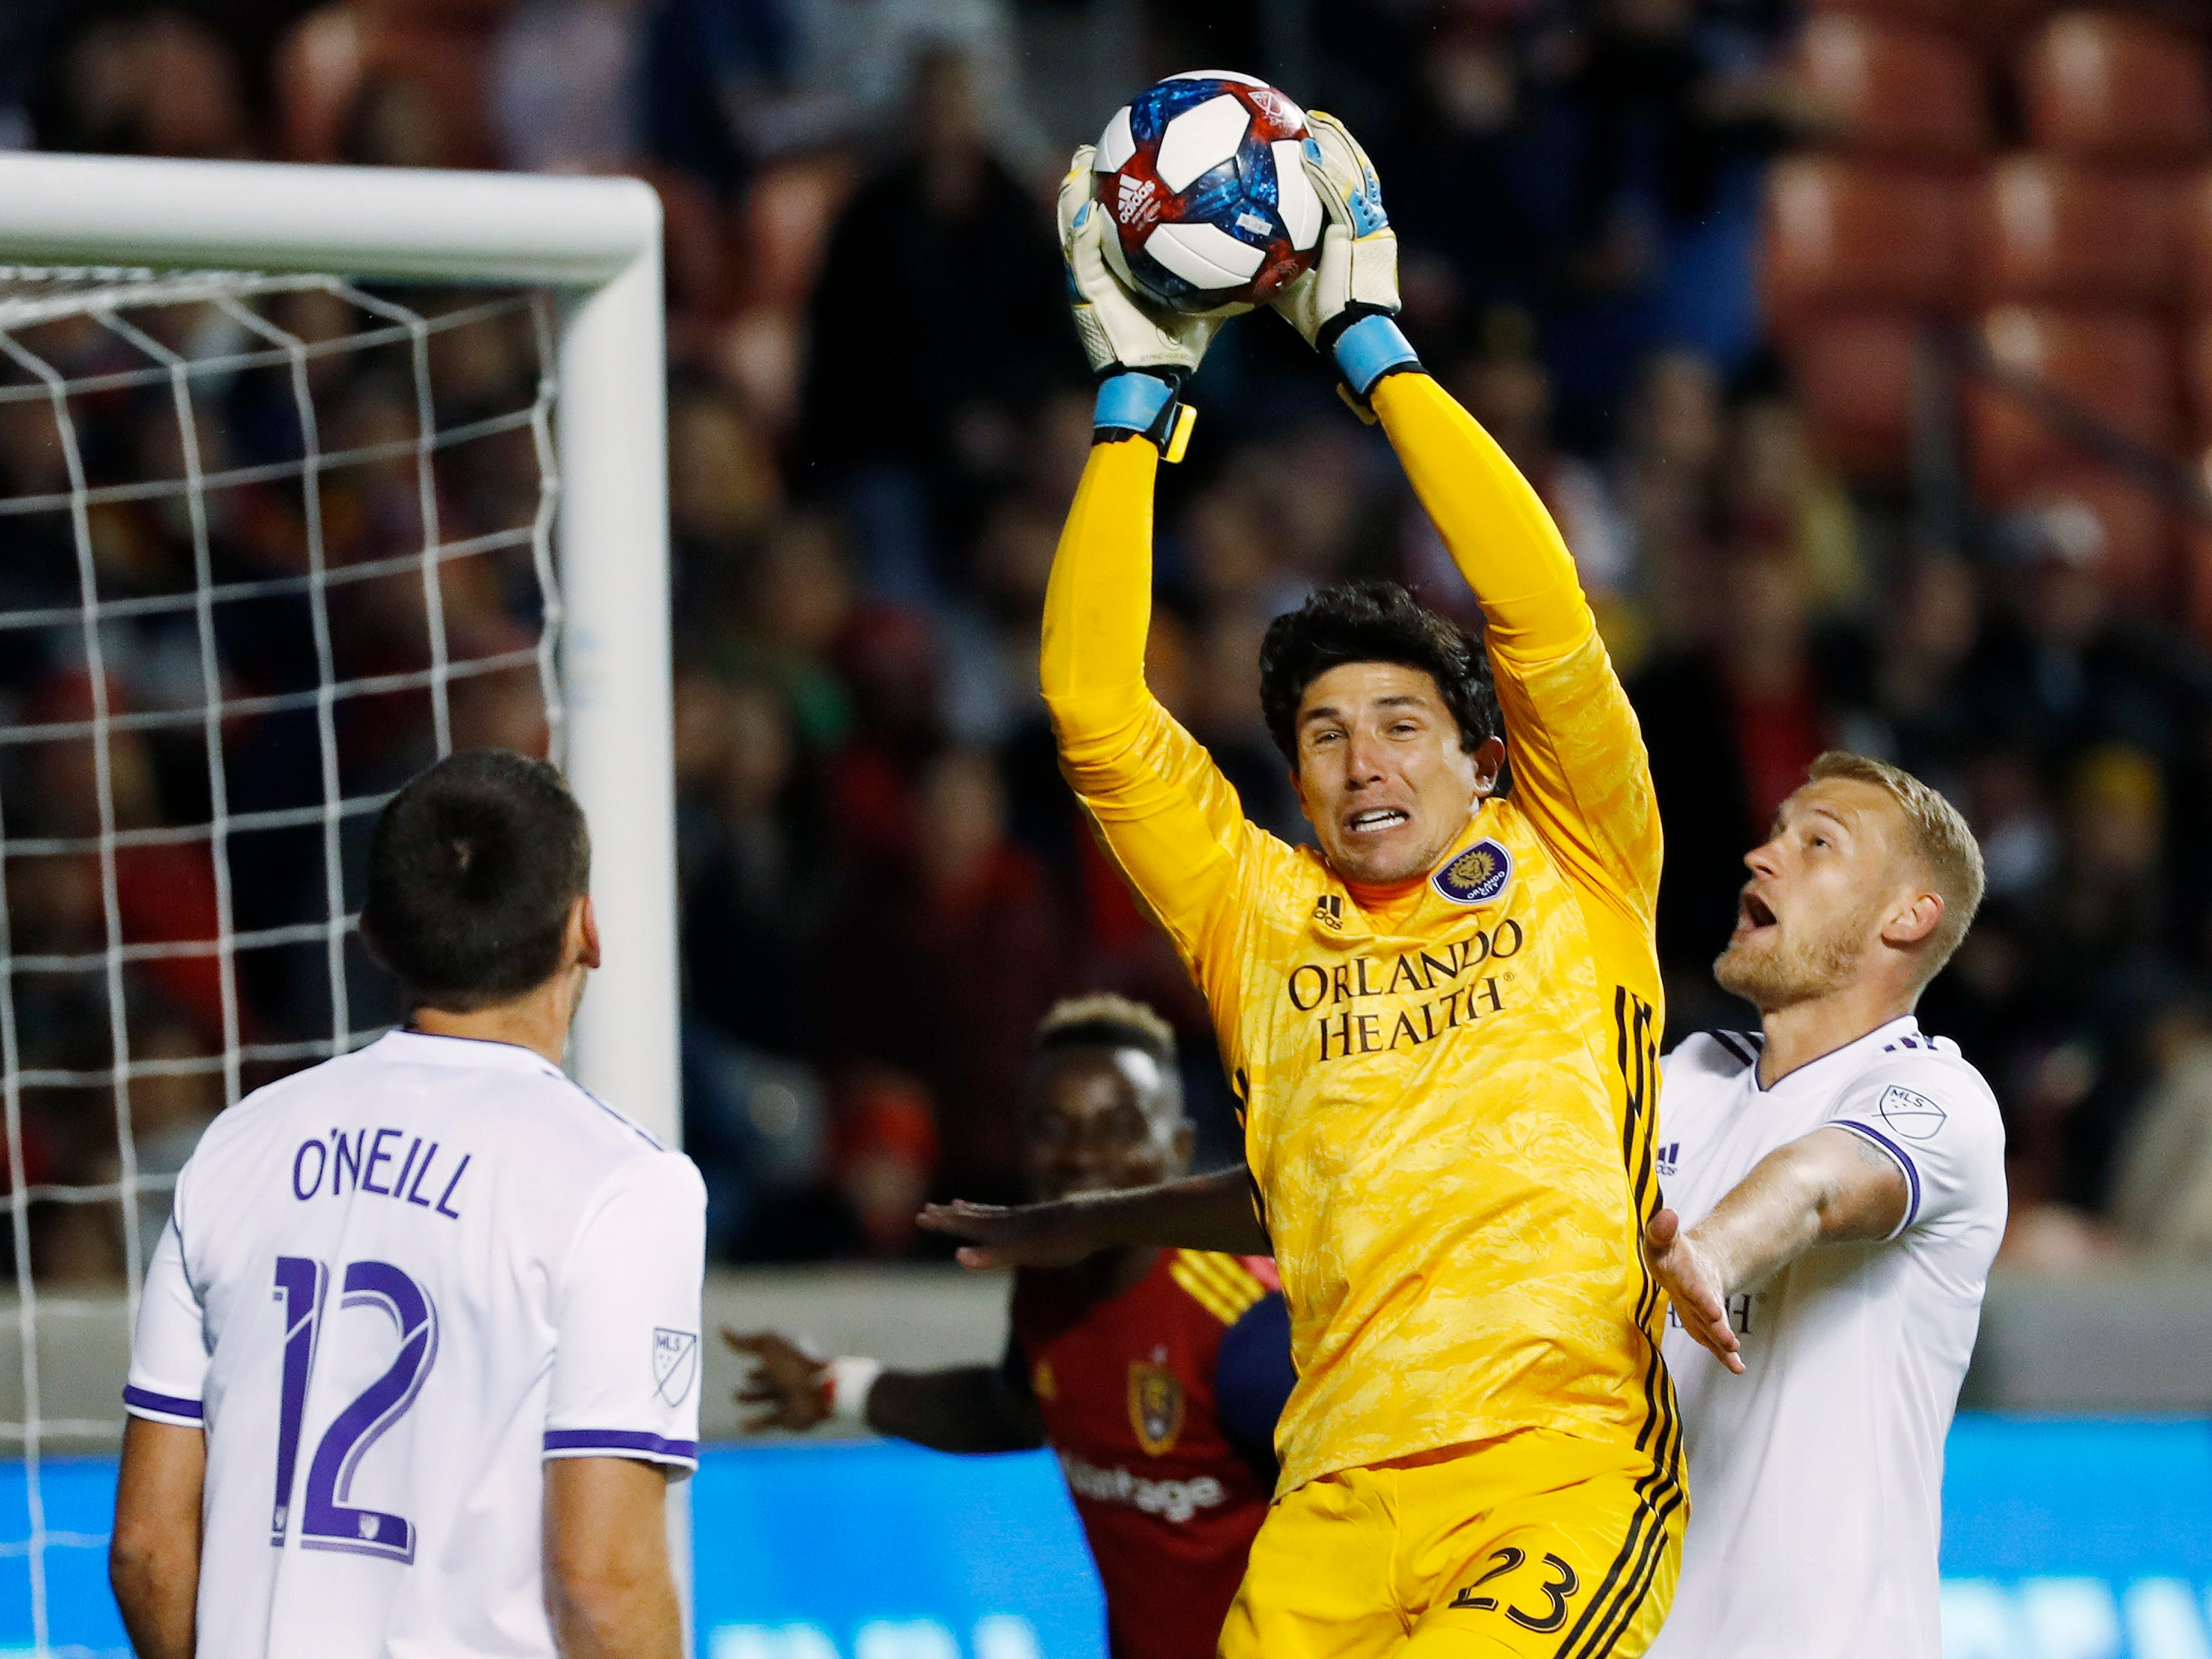 April 13: Orlando City goalkeeper Brian Rowe (23) makes a save in front of his teammates defender Shane O'Neill (12) and defender Robin Jansson (6) against Real Salt Lake in the second half at Rio Tinto Stadium. Real Salt Lake won the game, 2-1.